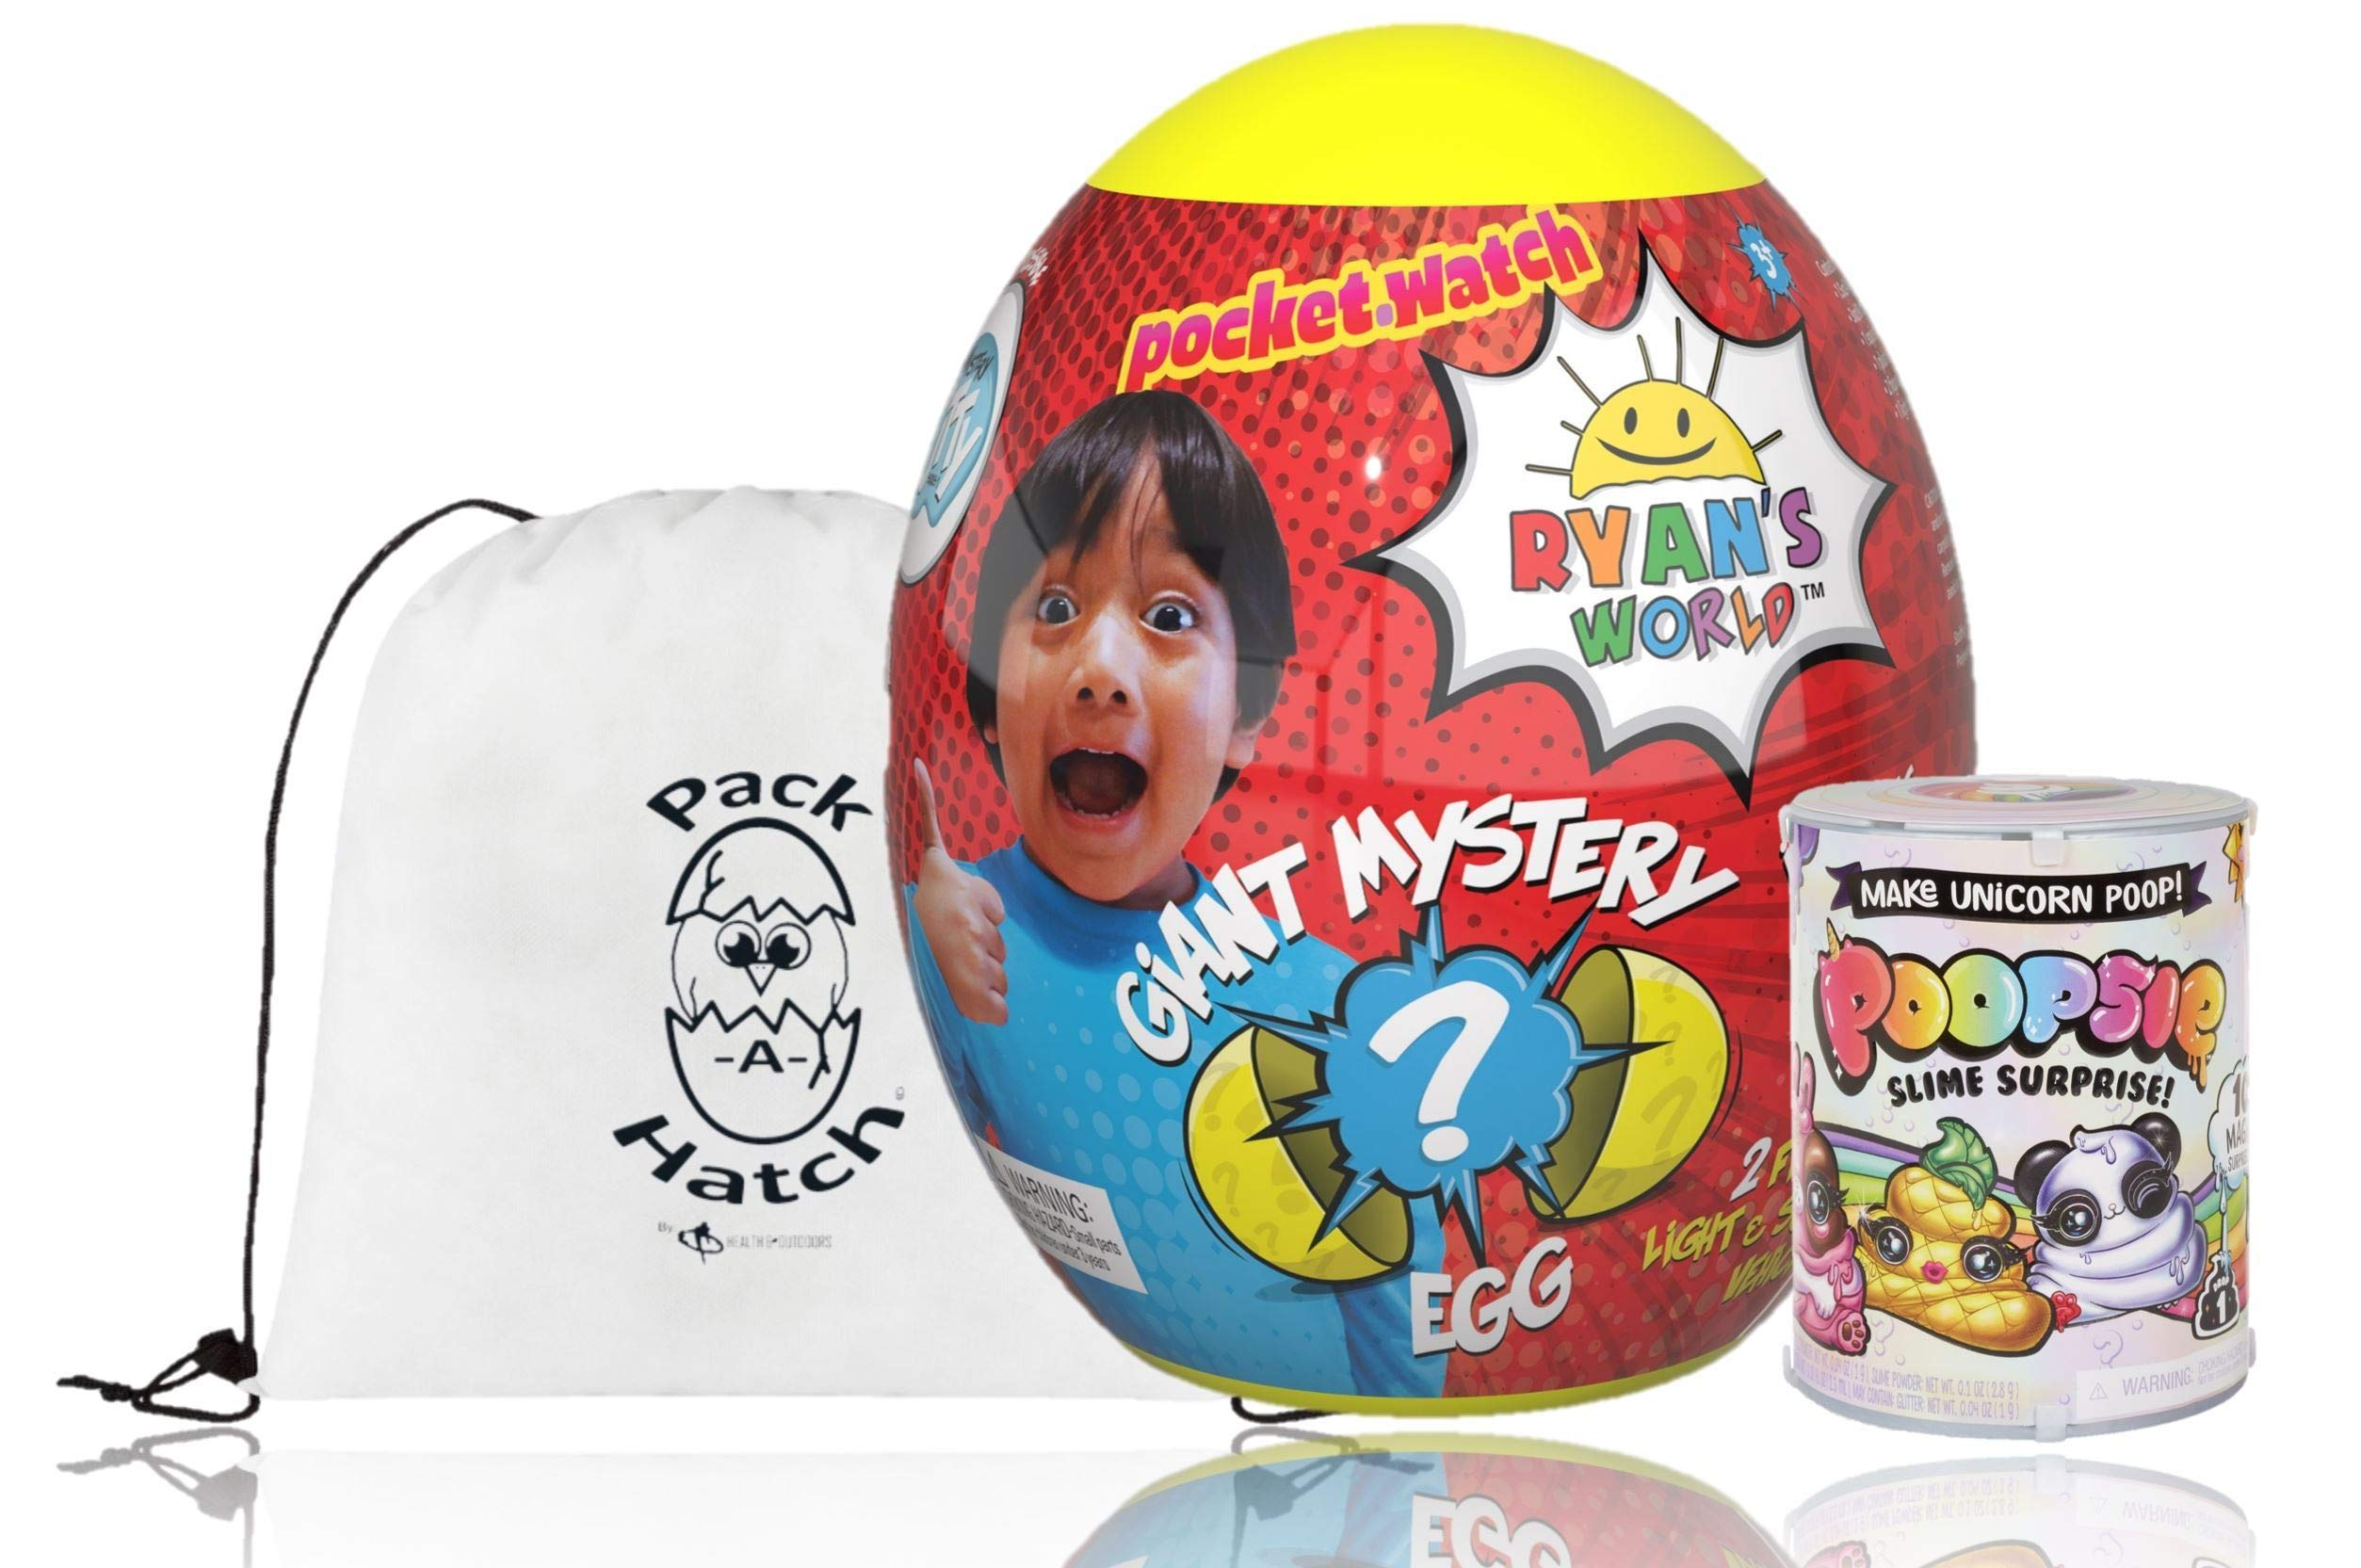 Poopsie Ryan's World Mystery Egg and Pack of Unicorn Slime W/ Pack a Hatch